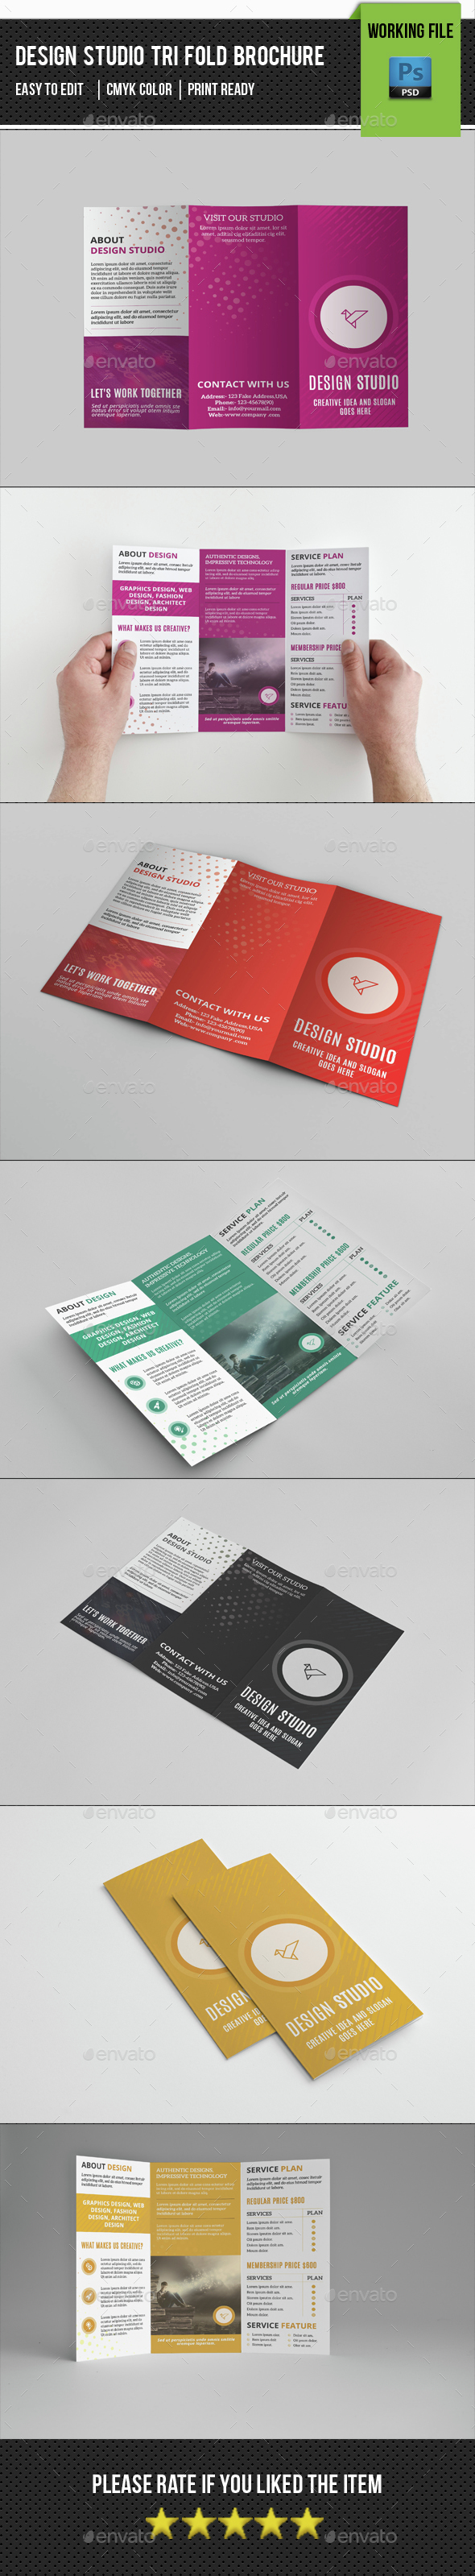 Design Studio Trifold Brochure-V279 - Corporate Brochures